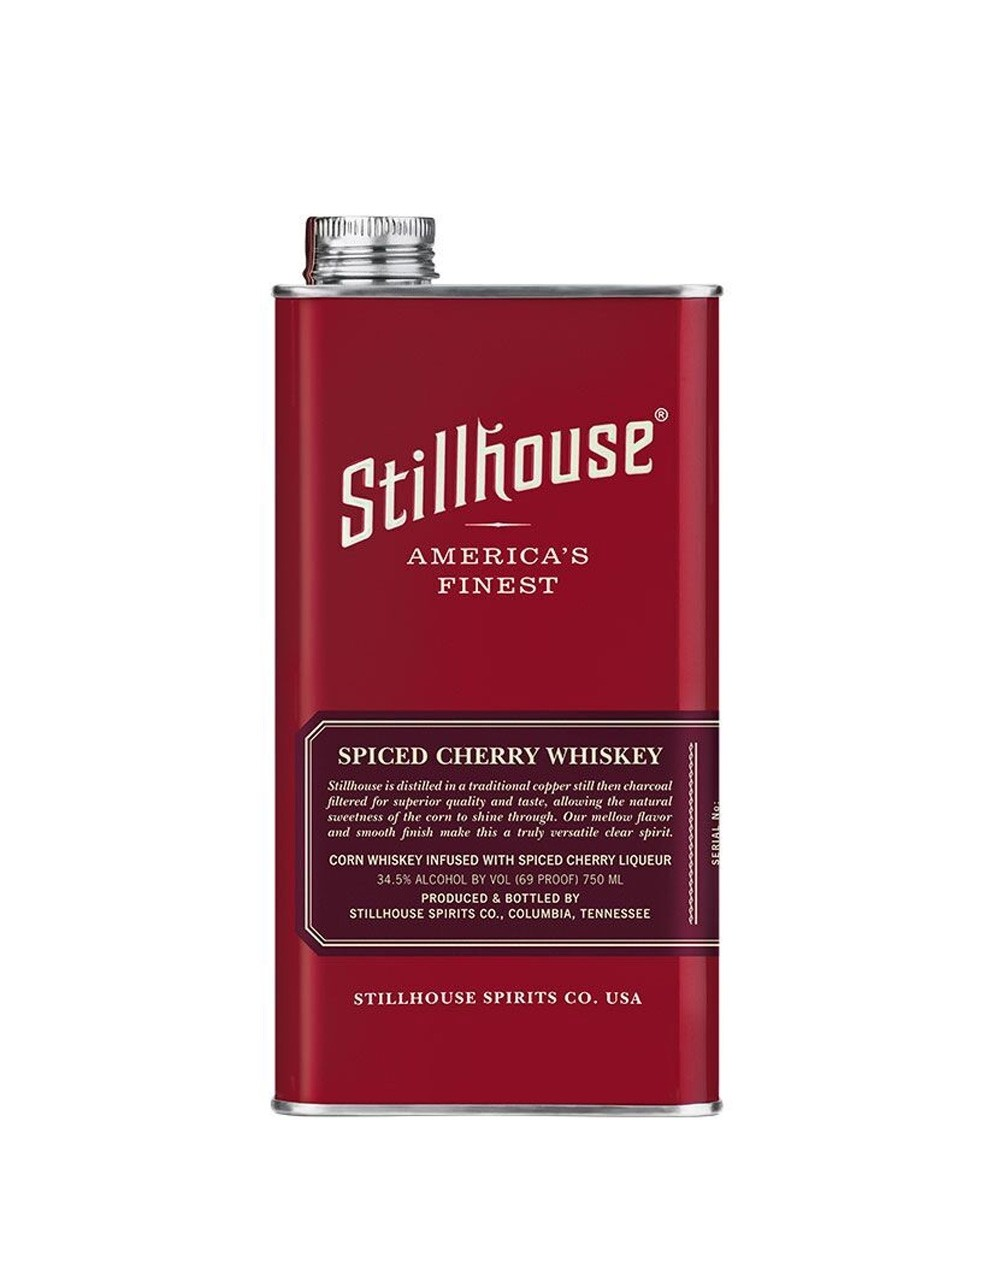 Stillhouse Spiced Cherry Whiskey  Buy Online or Send as a